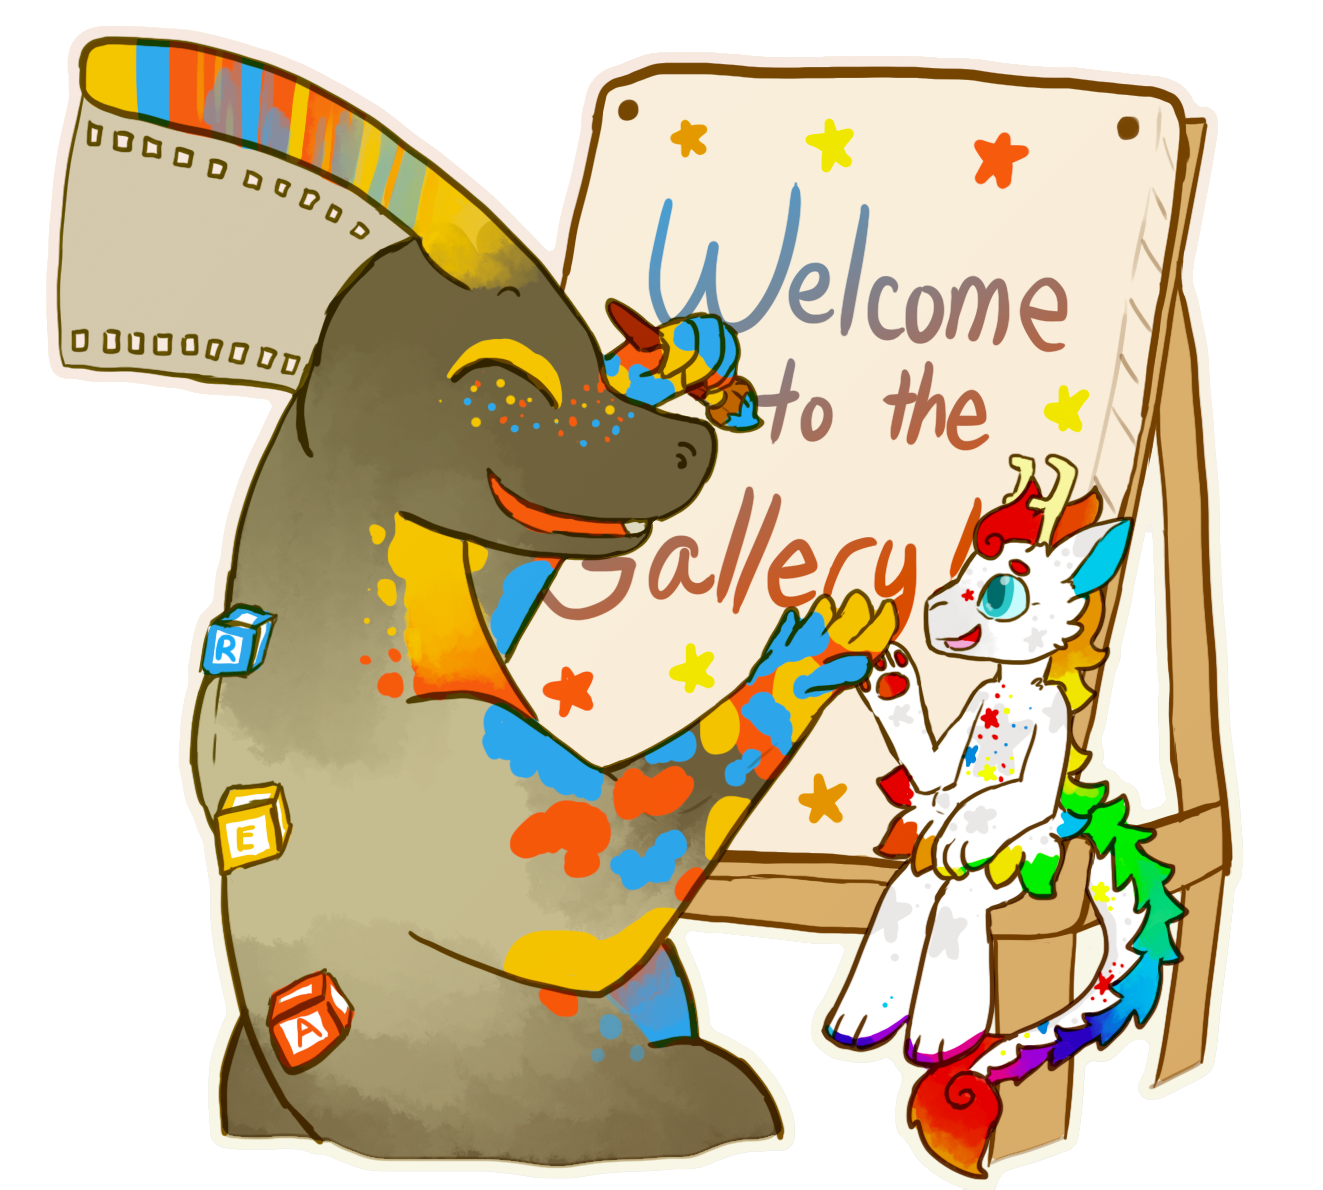 Welcome to the Gallery!